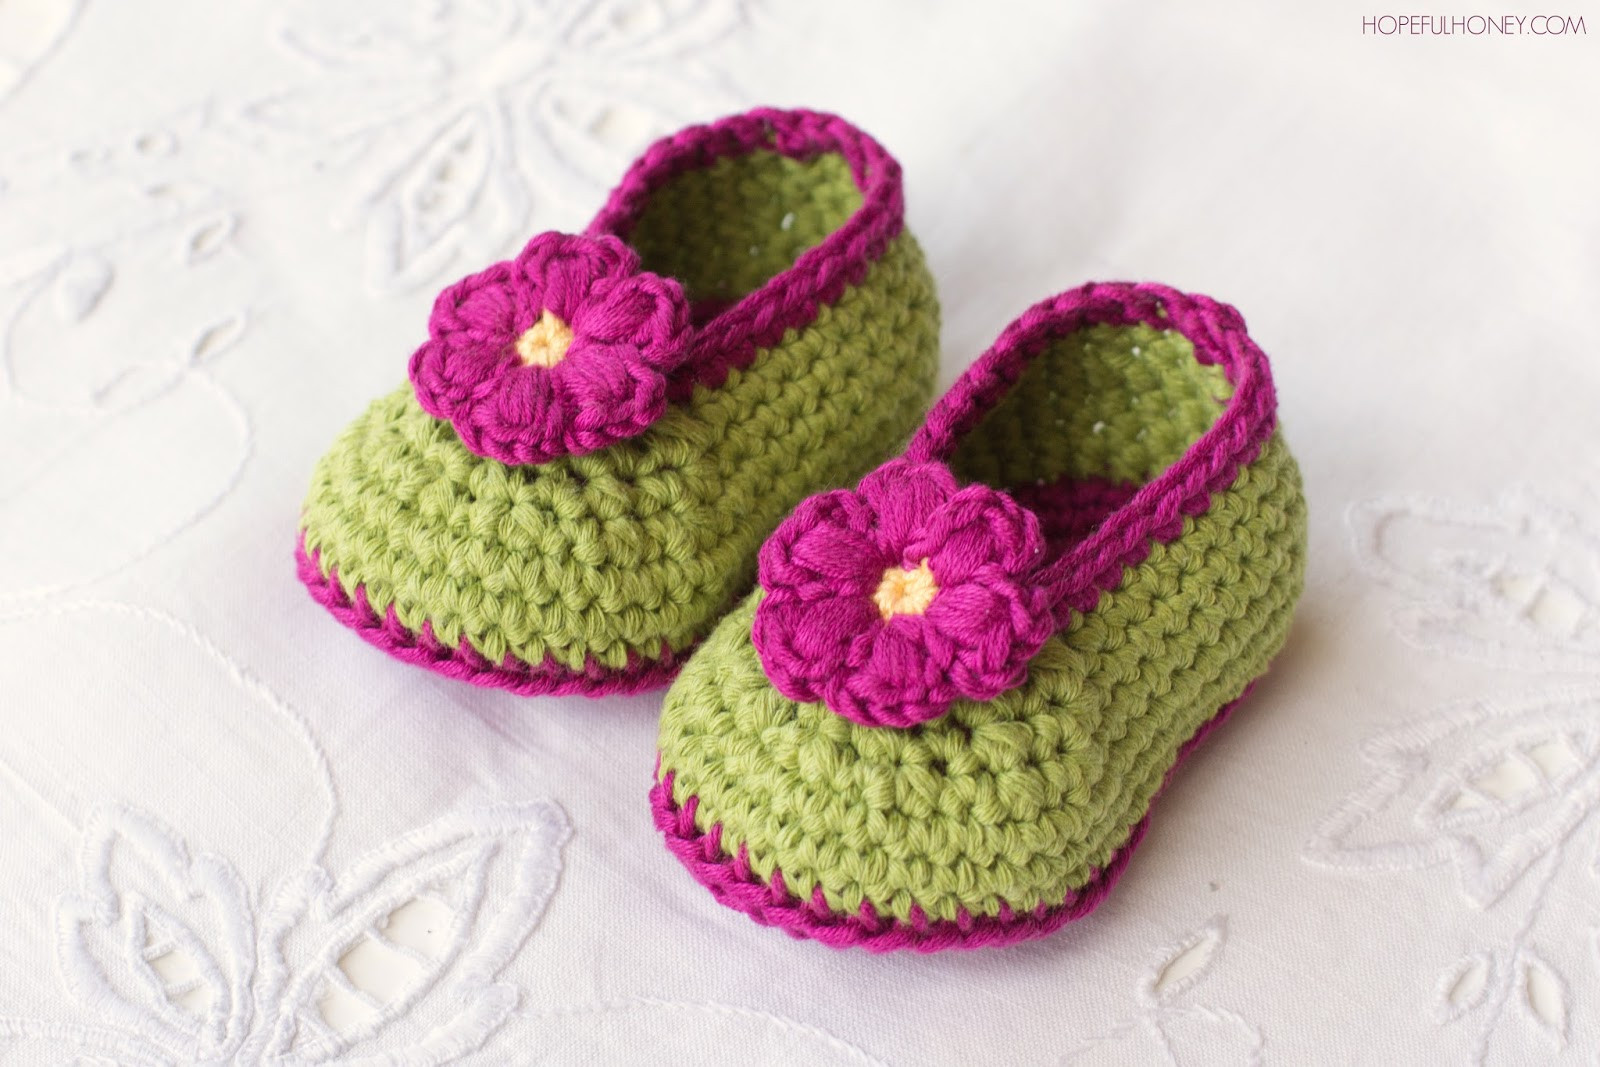 Newborn Crochet Patterns Unique Free Crochet Pattern for toddler Slippers Of Incredible 41 Ideas Newborn Crochet Patterns